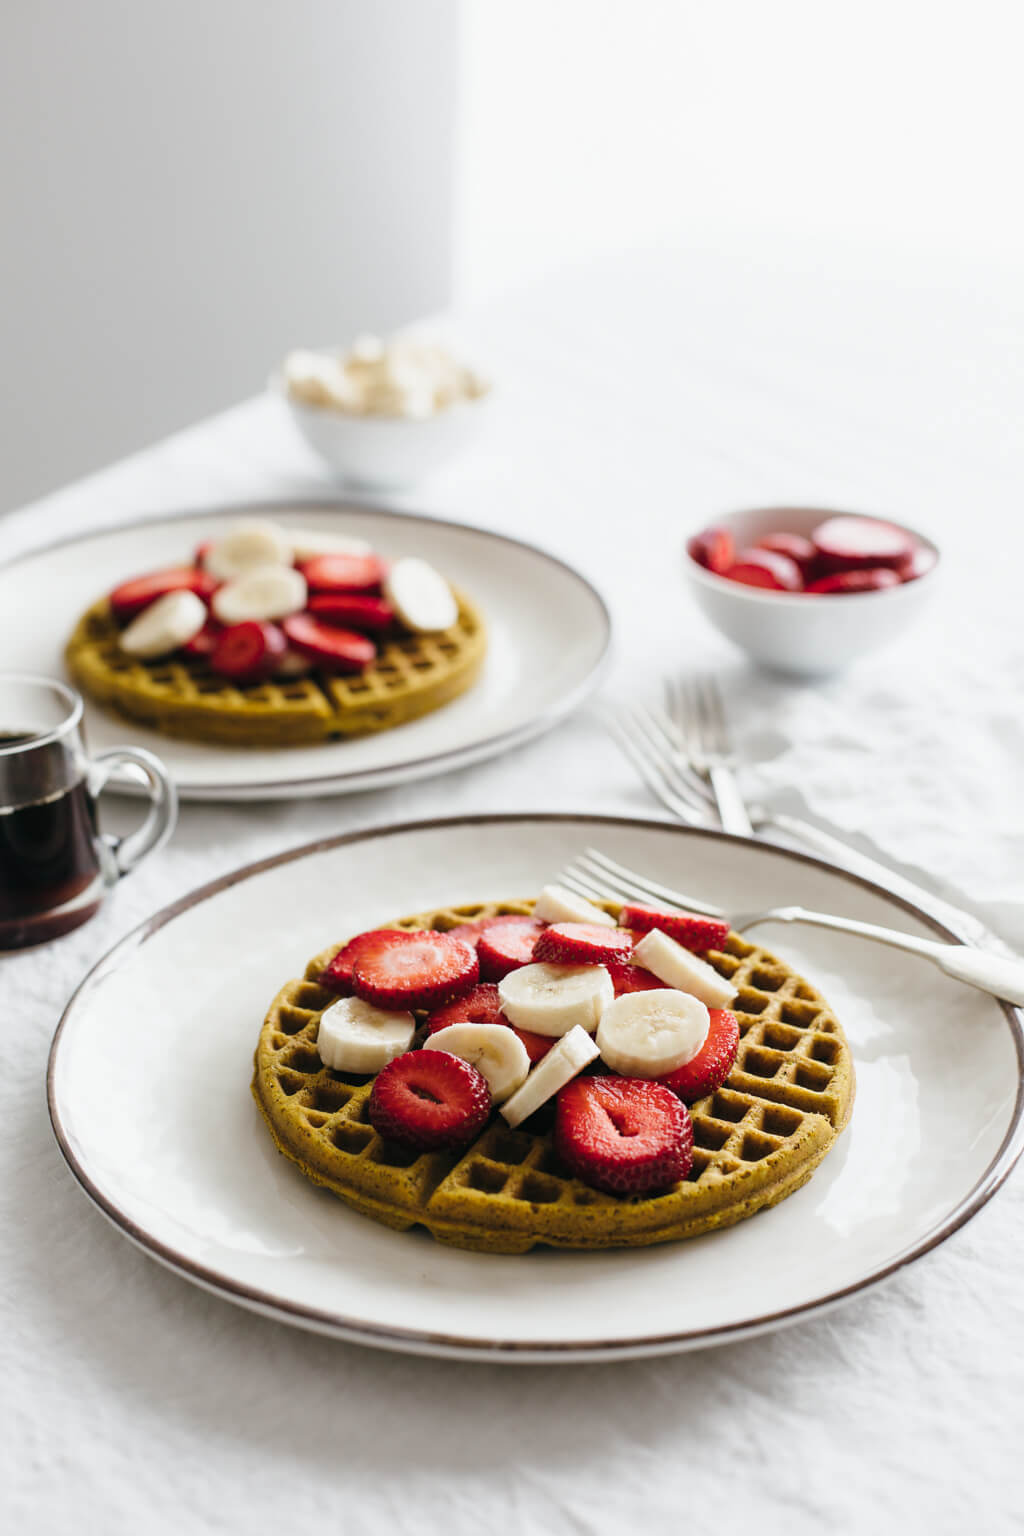 Super seed buckwheat waffles. Gluten-free, dairy-free and vegan.